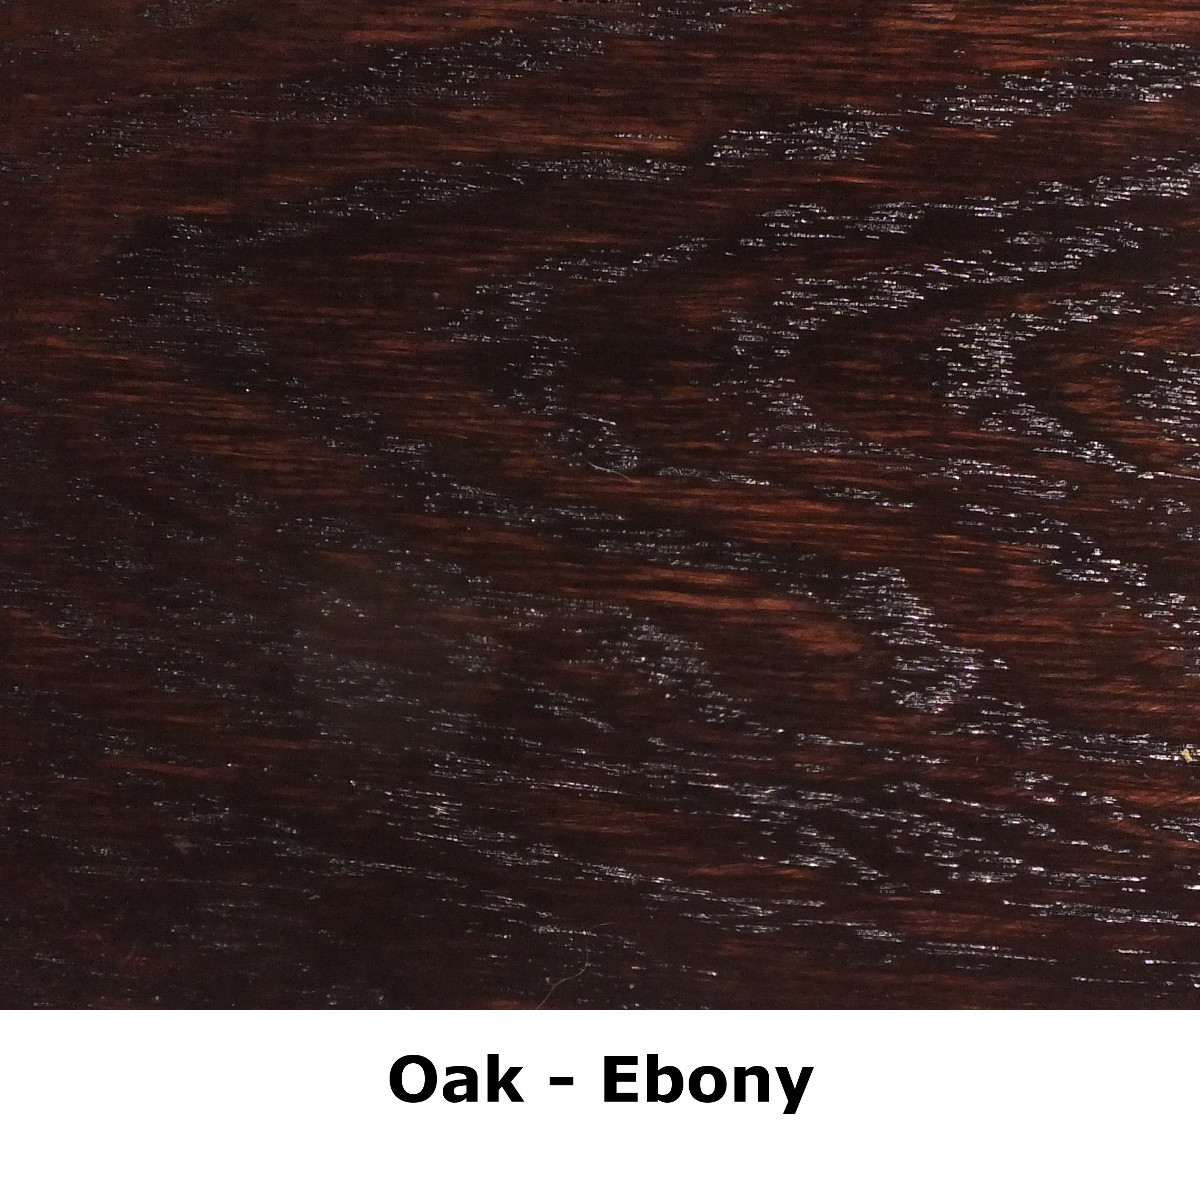 sq oak ebony.jpeg